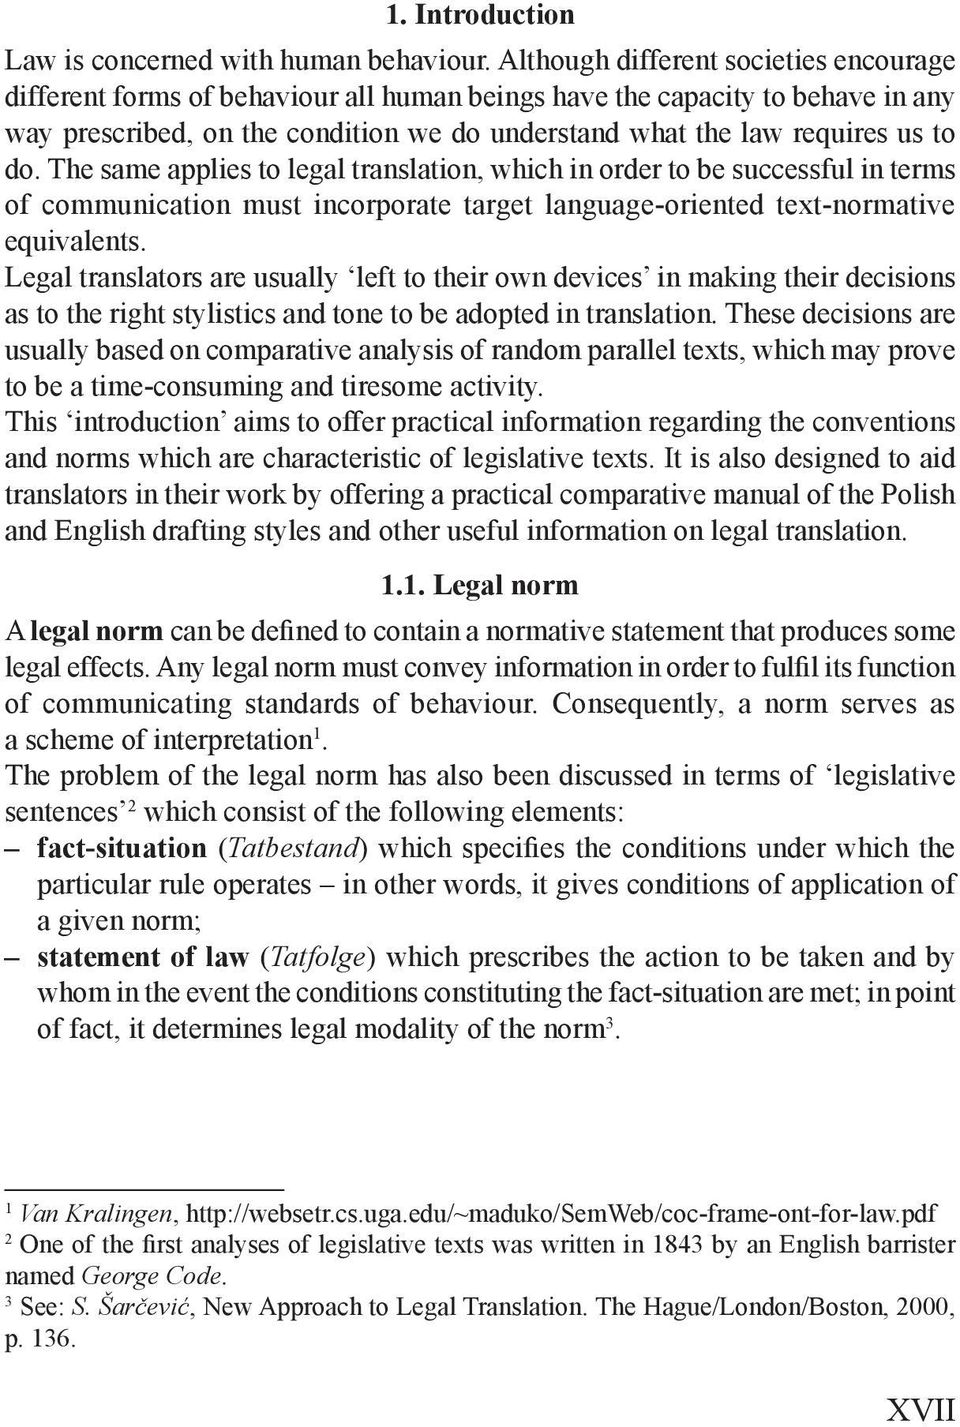 do. The same applies to legal translation, which in order to be successful in terms of communication must incorporate target language-oriented text-normative equivalents.